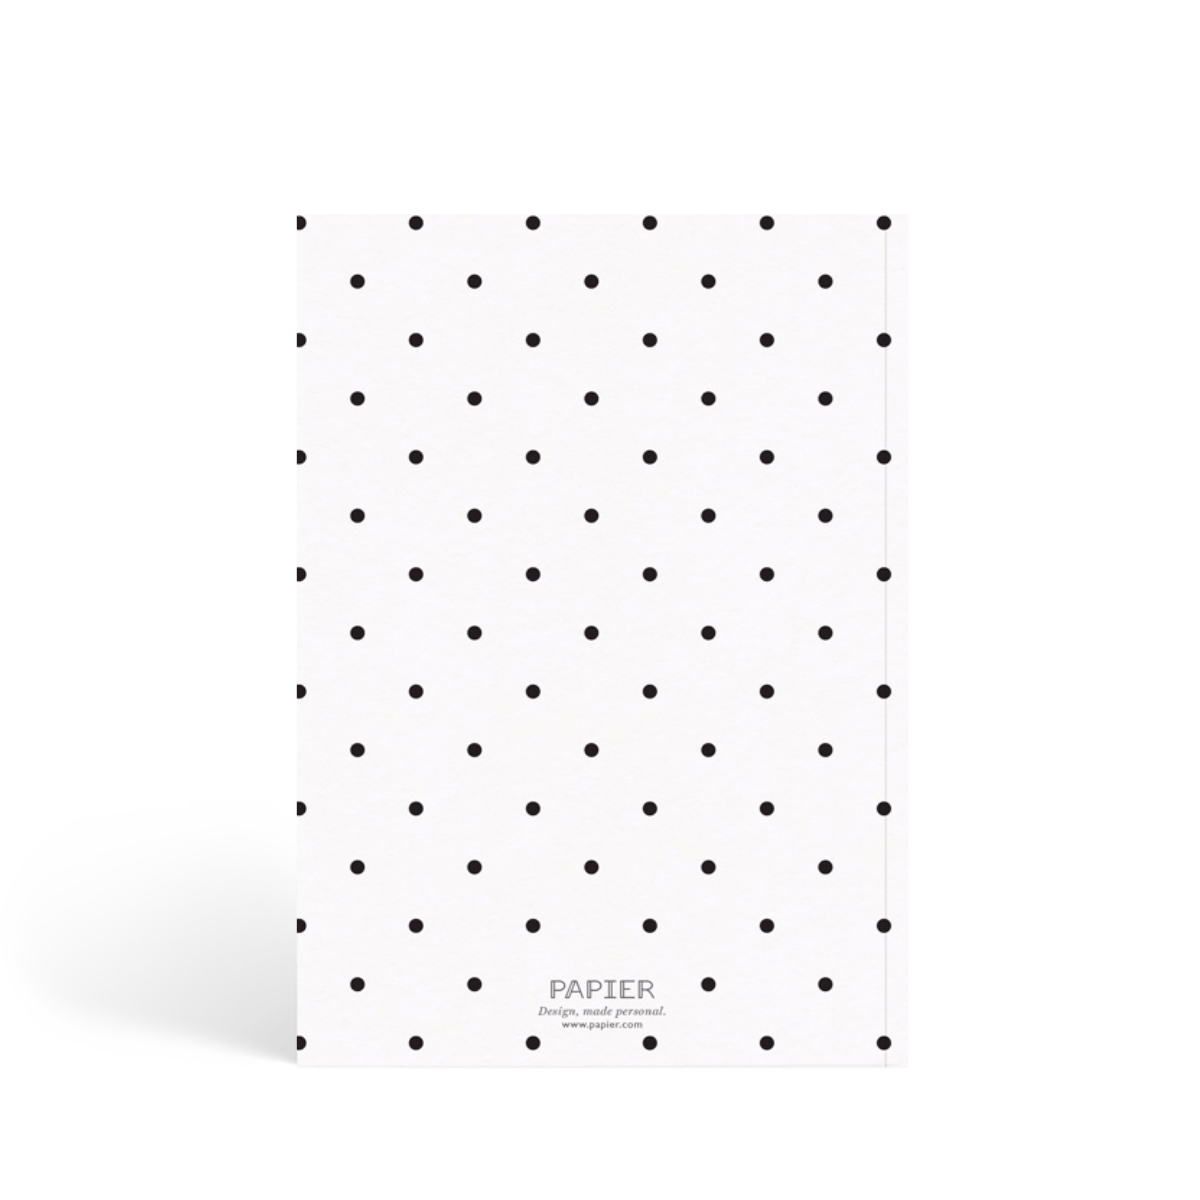 Https%3a%2f%2fwww.papier.com%2fproduct image%2f6682%2f5%2ftiny dots 1660 arriere 1461689239.png?ixlib=rb 1.1